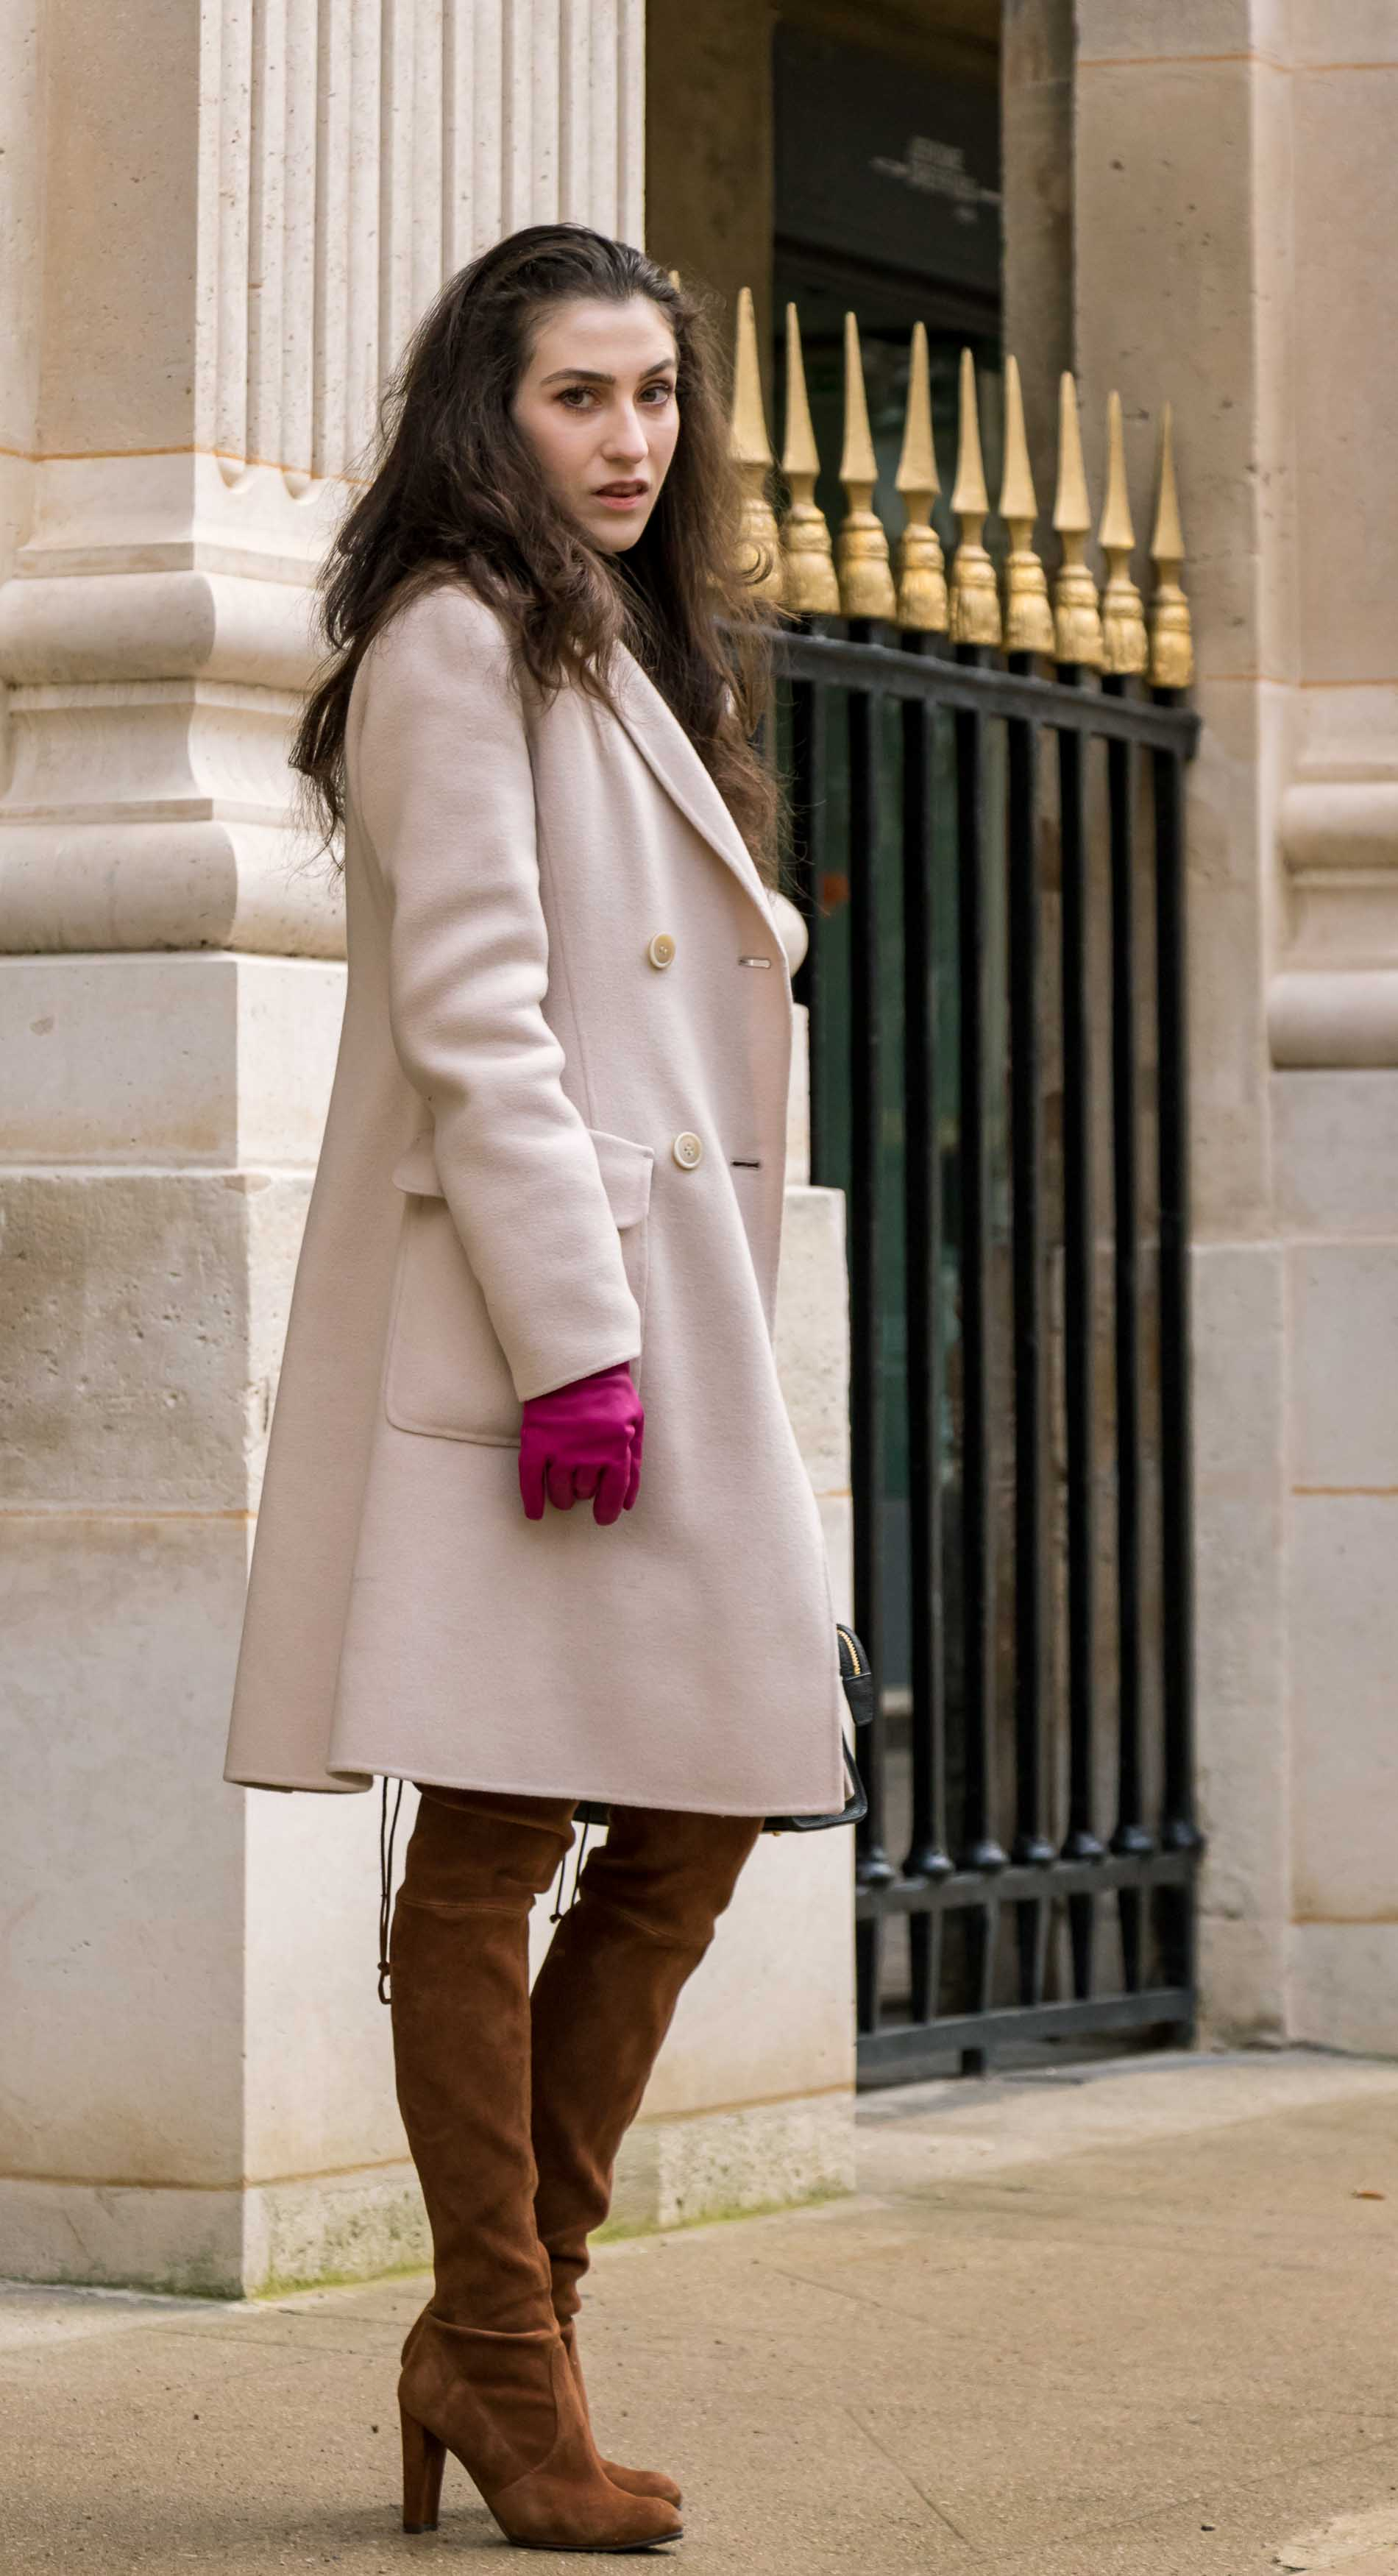 Fashion Blogger Veronika Lipar of Brunette from Wall Street wearing Stuart Weitzman otk boots, Weekend Maxmara coat, pink leather gloves and black small bag during Paris fashion week autumn winter 2018/19 in garden du Palais du Royal